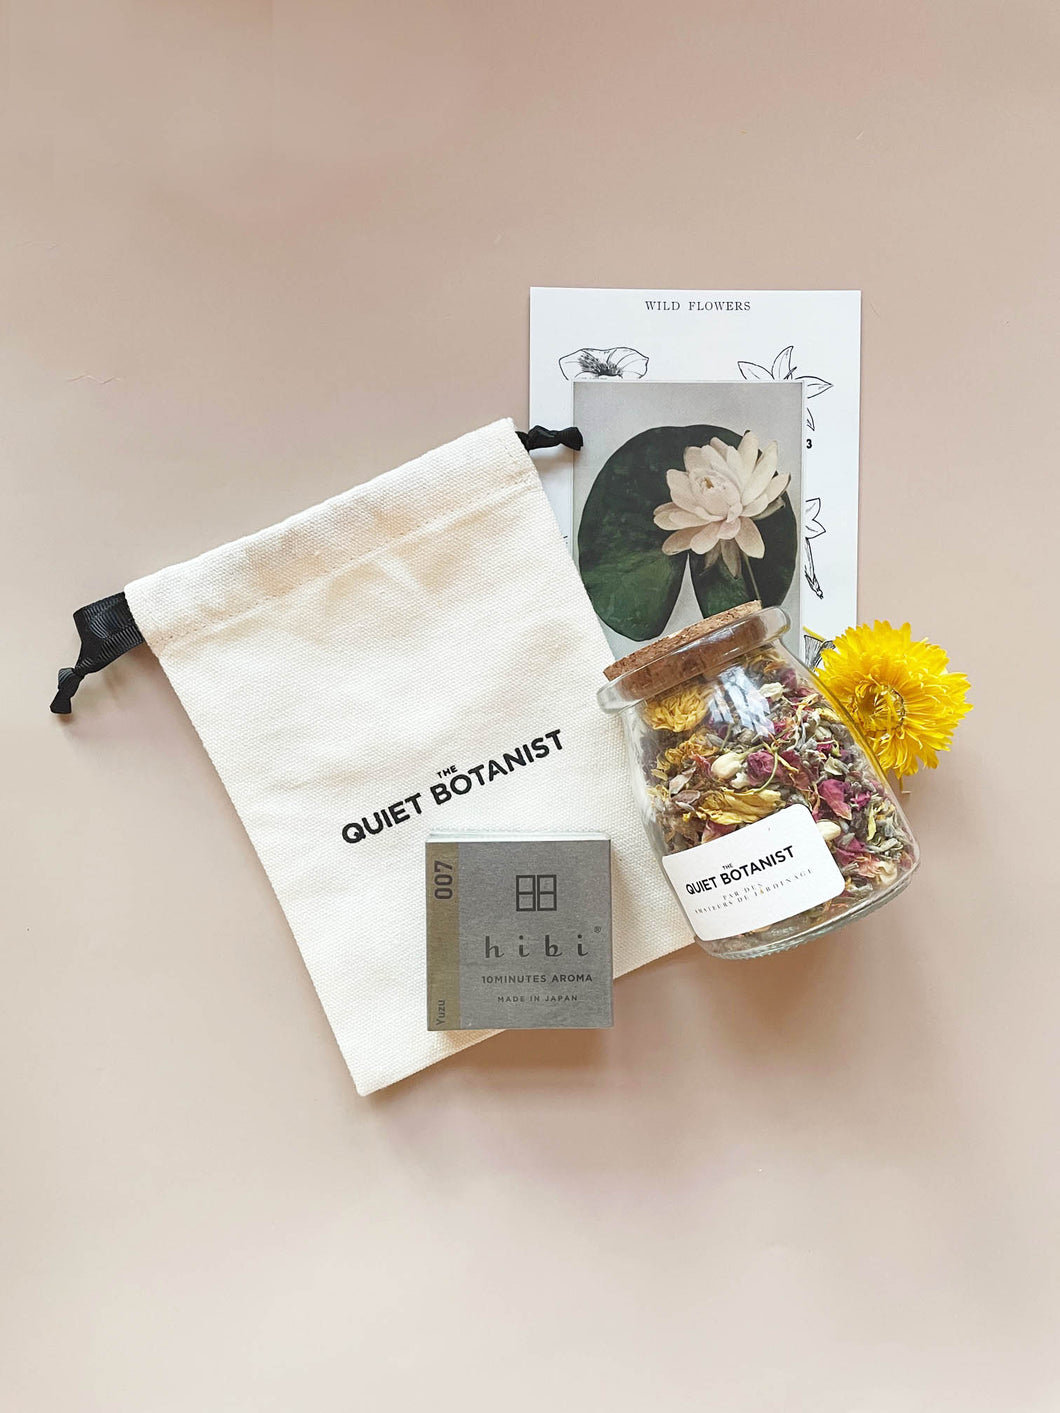 Valentine's Day Gift Set including The Quiet Botanist Edible Flowers and HIbi Incense Matches.